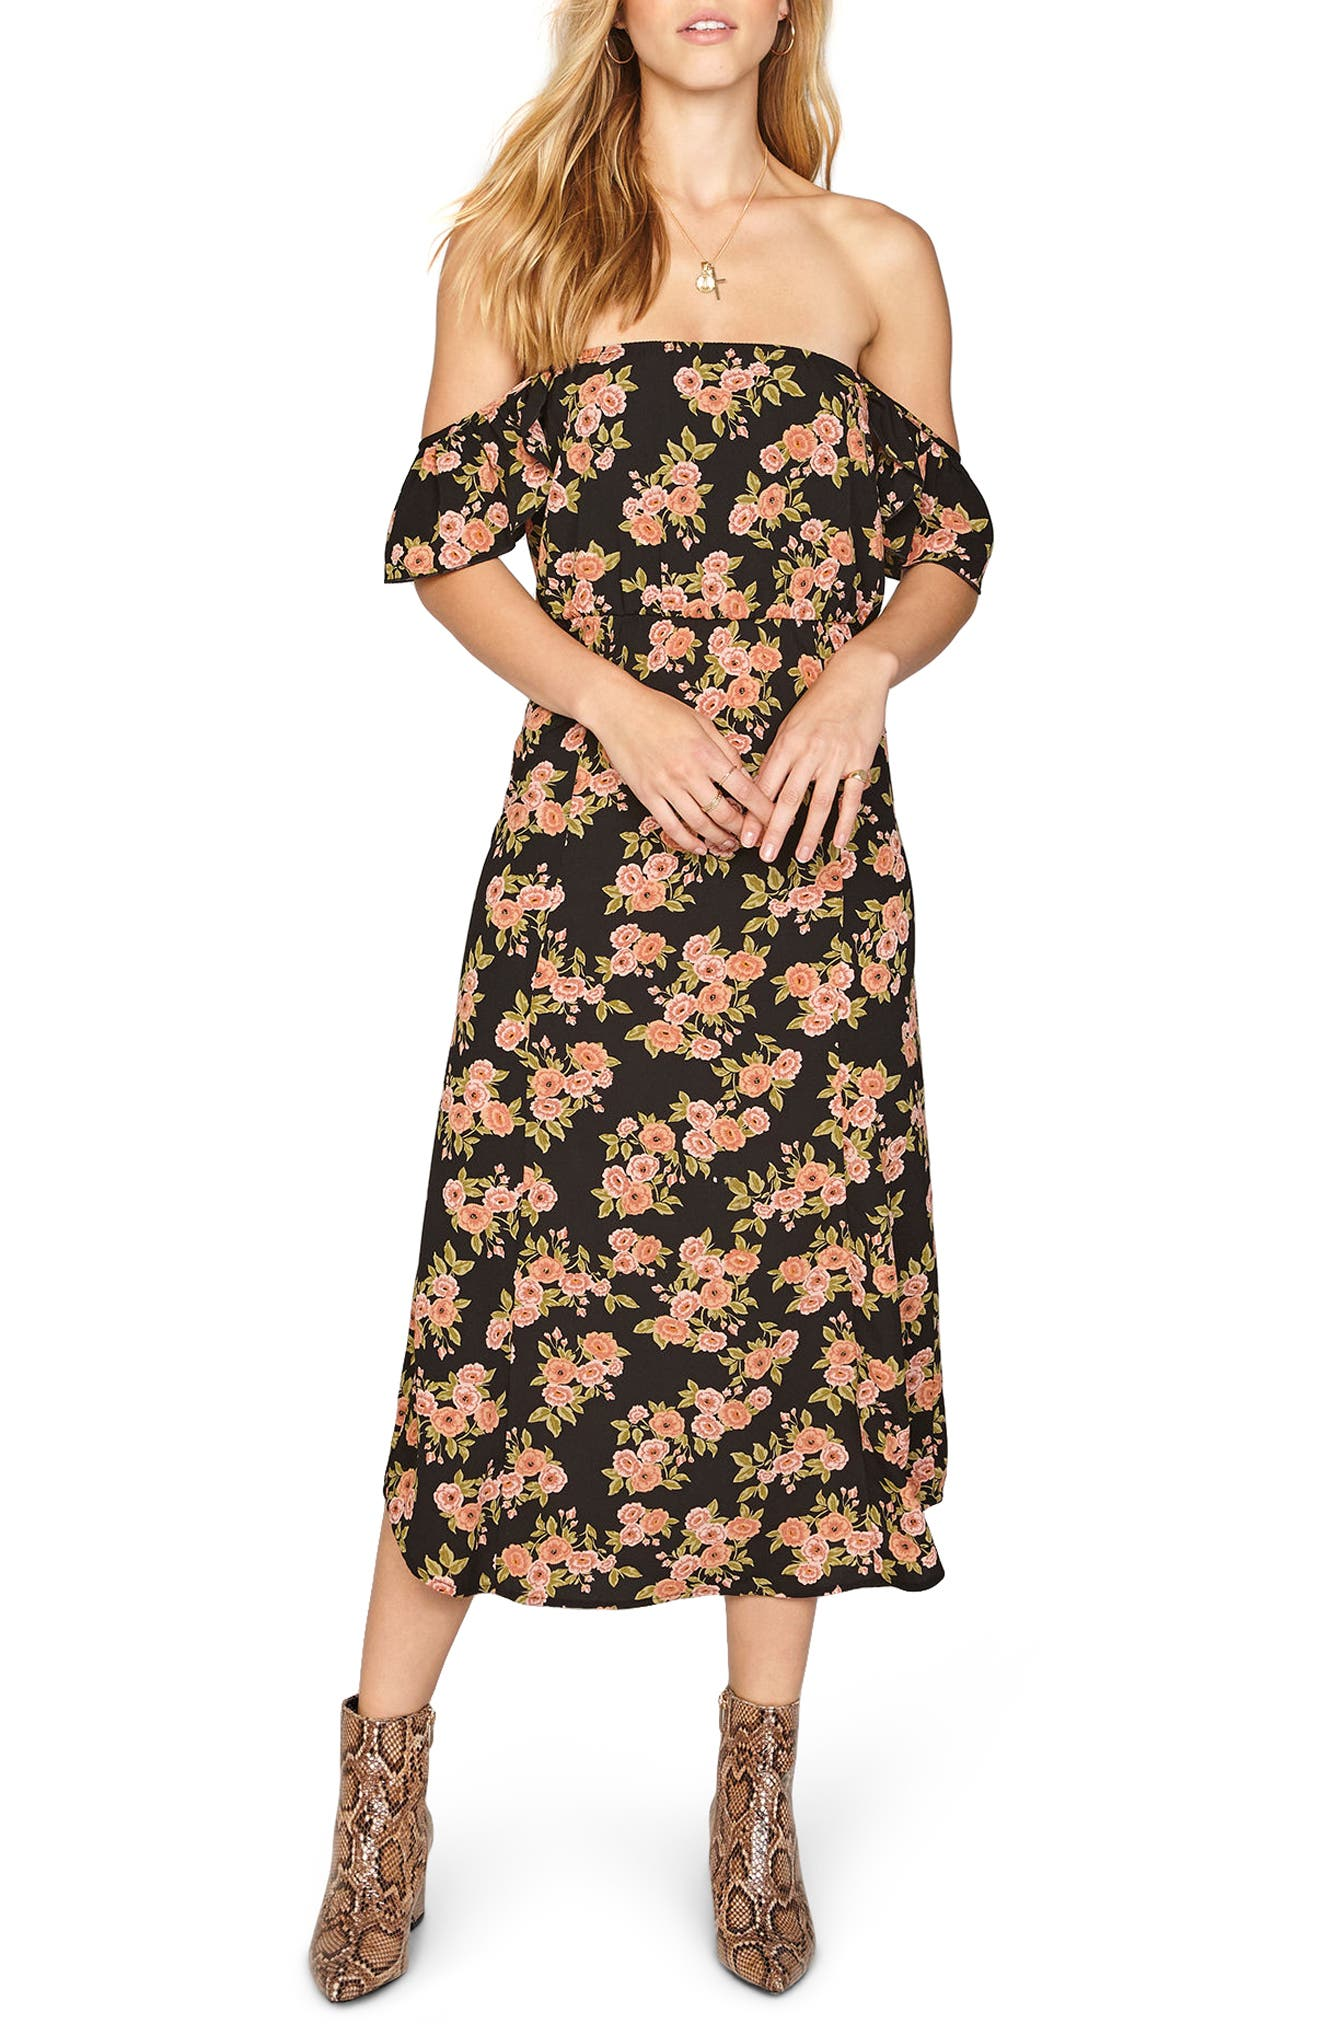 Sweeter Than You Off the Shoulder Midi Dress,                             Main thumbnail 1, color,                             001